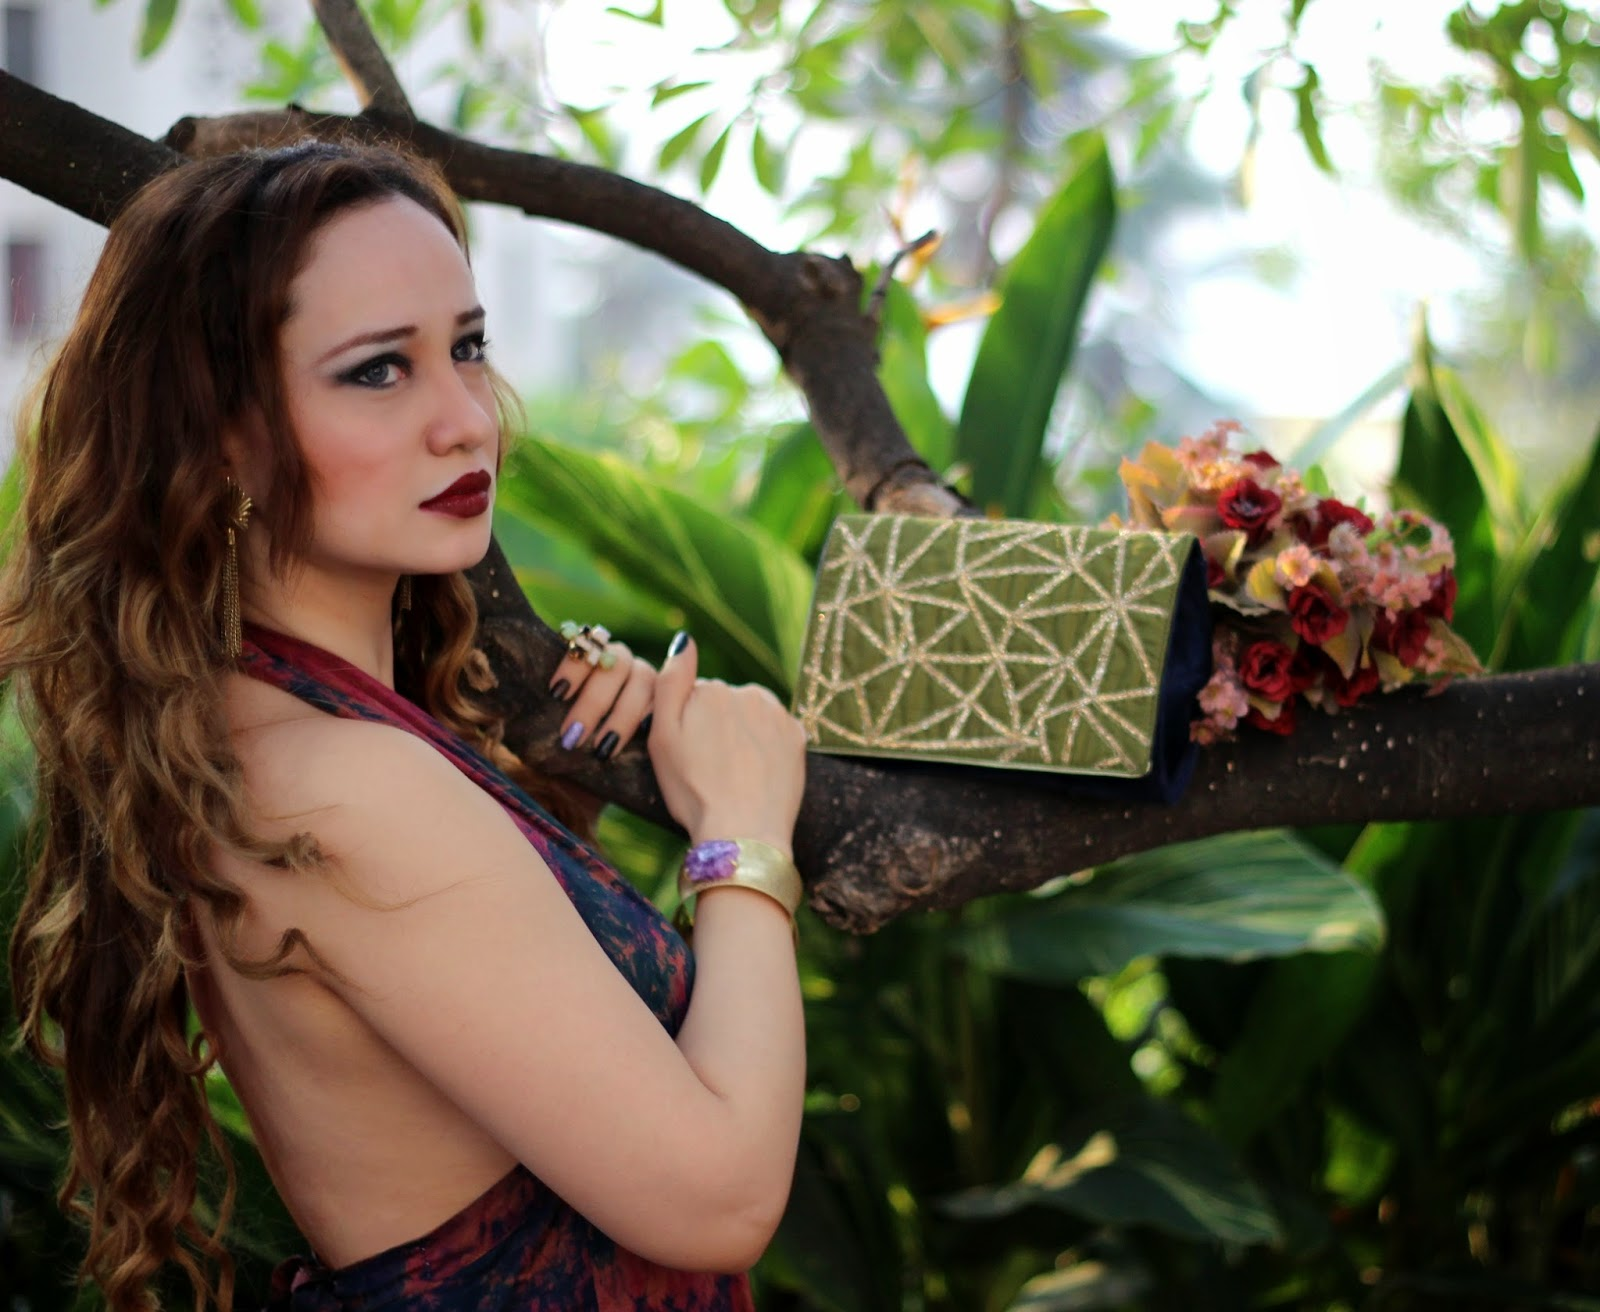 Girl with Curls, Mac Diva, Bordeaux Lips, Embroidered Clutch